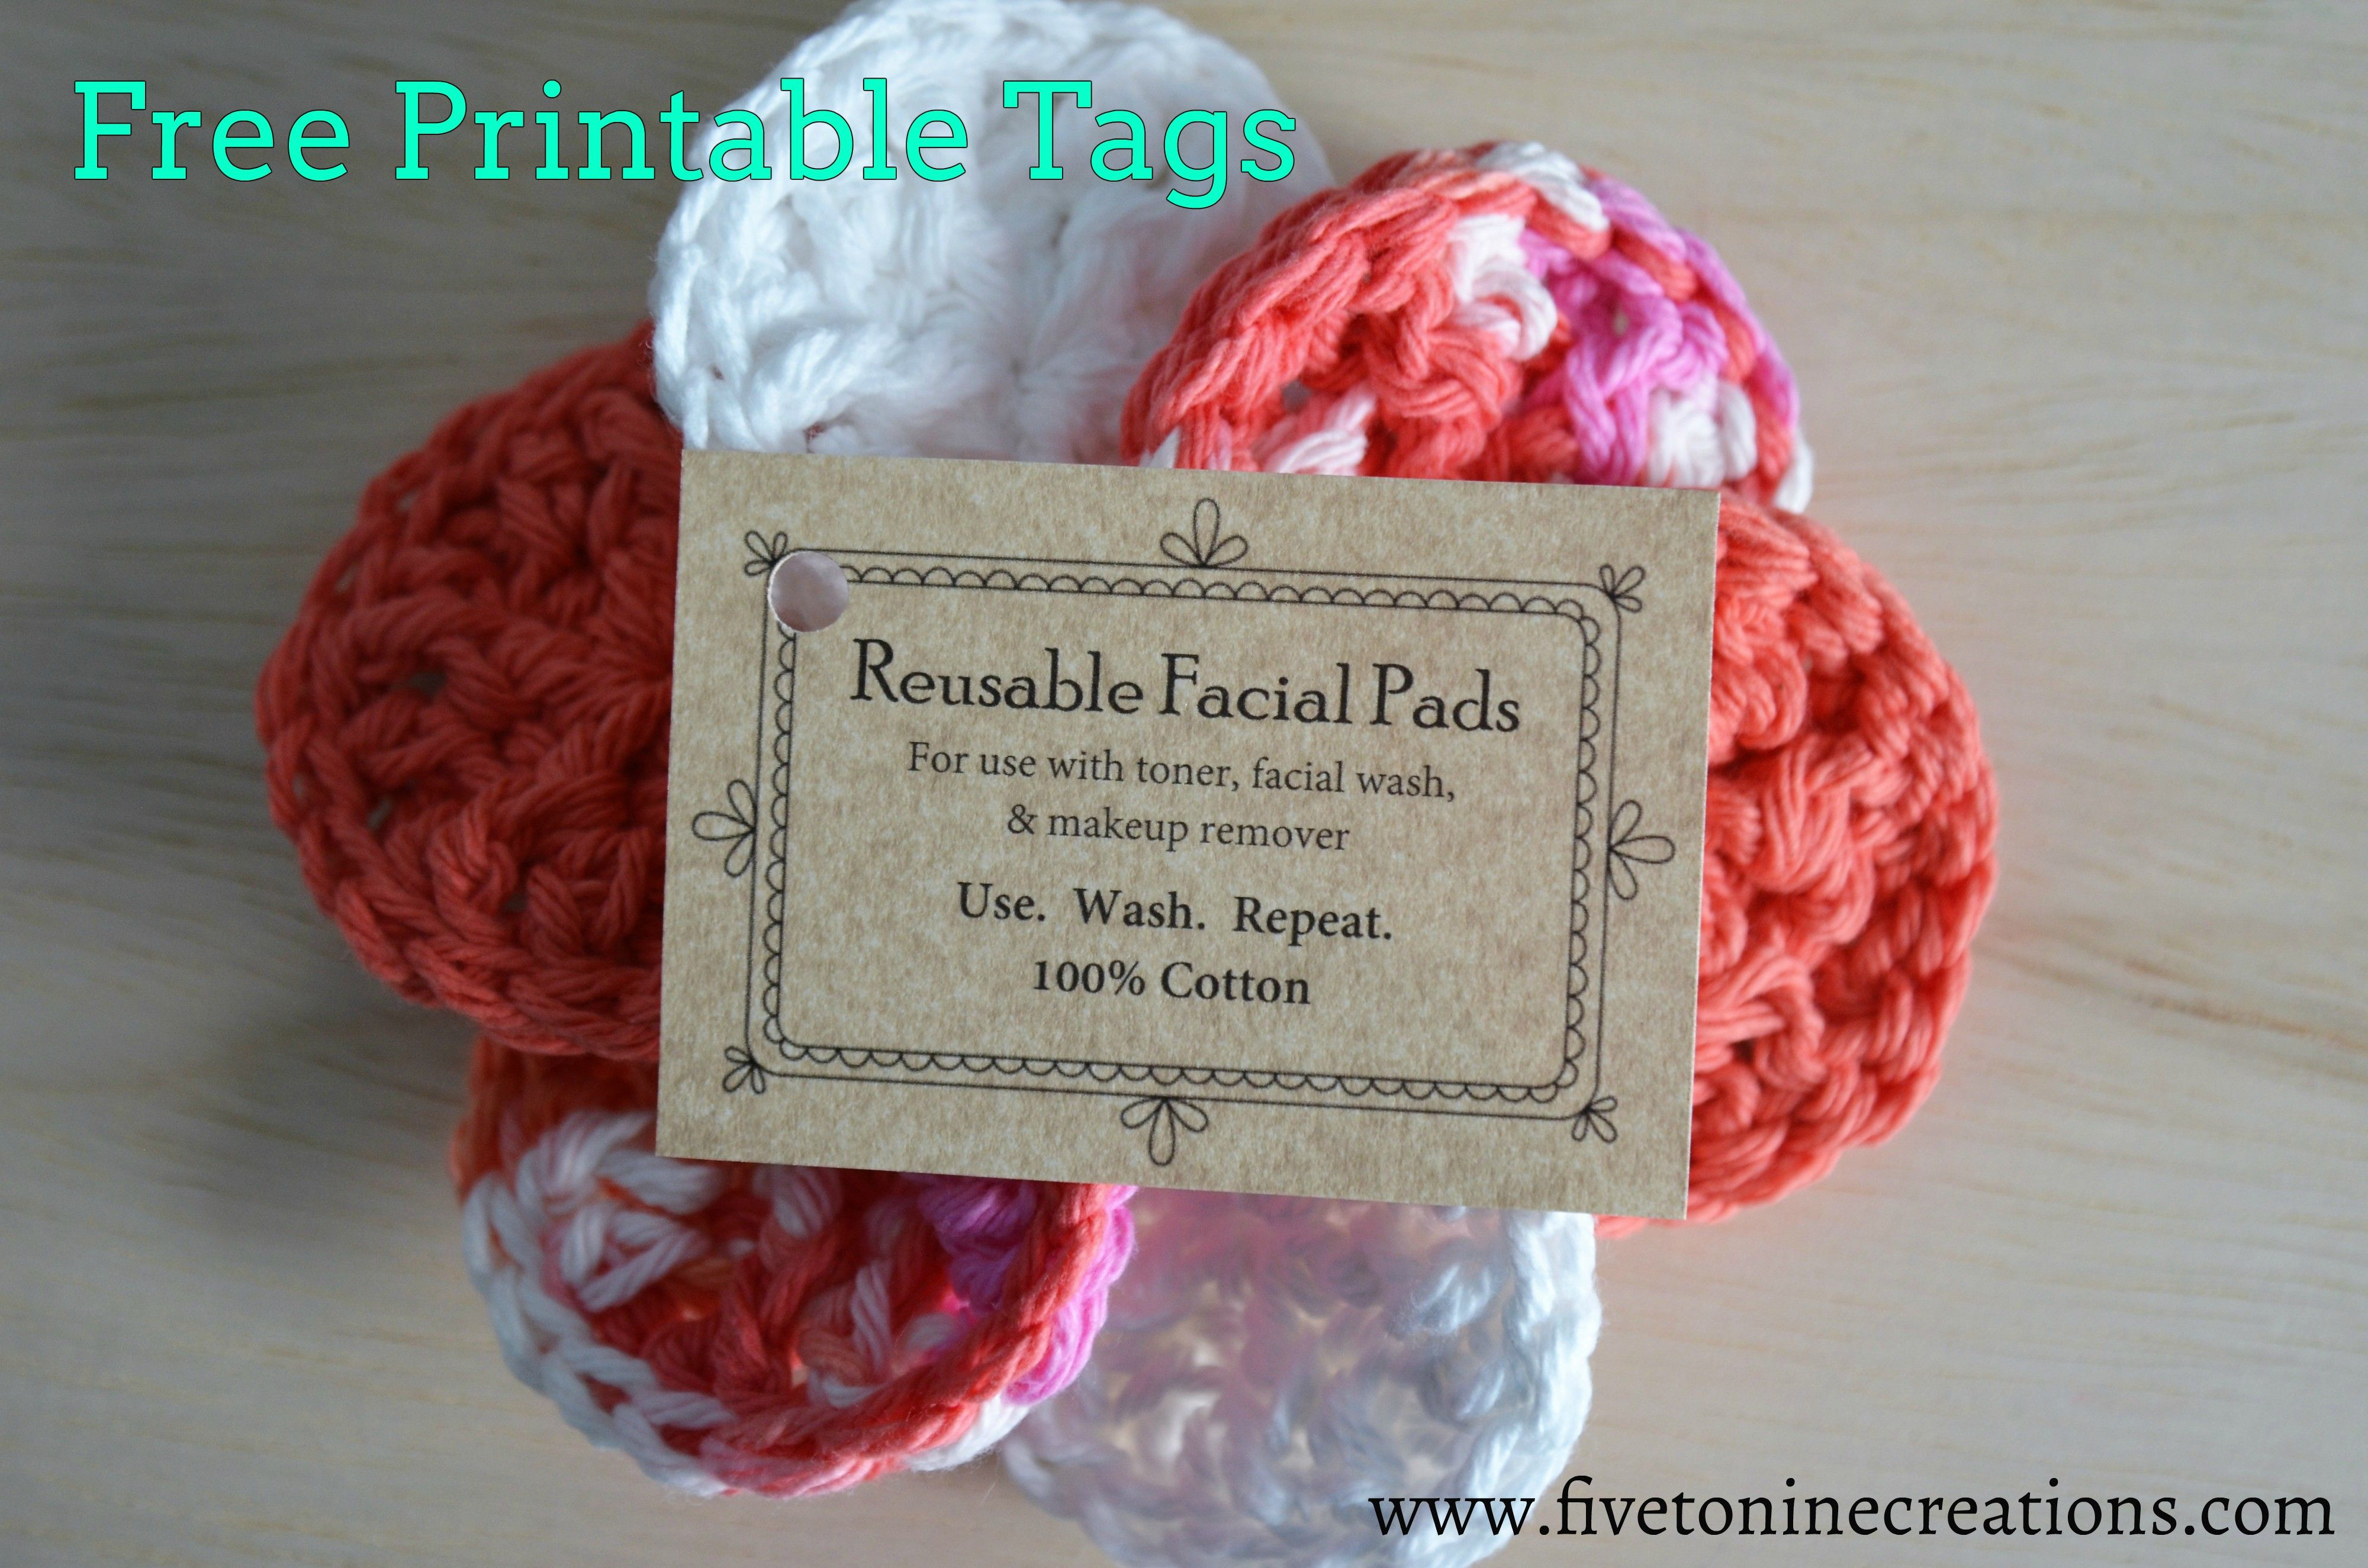 Free Printable Tags For Face Scrubby Pads. Comes With Free Crochet - Free Printable Dishcloth Wrappers